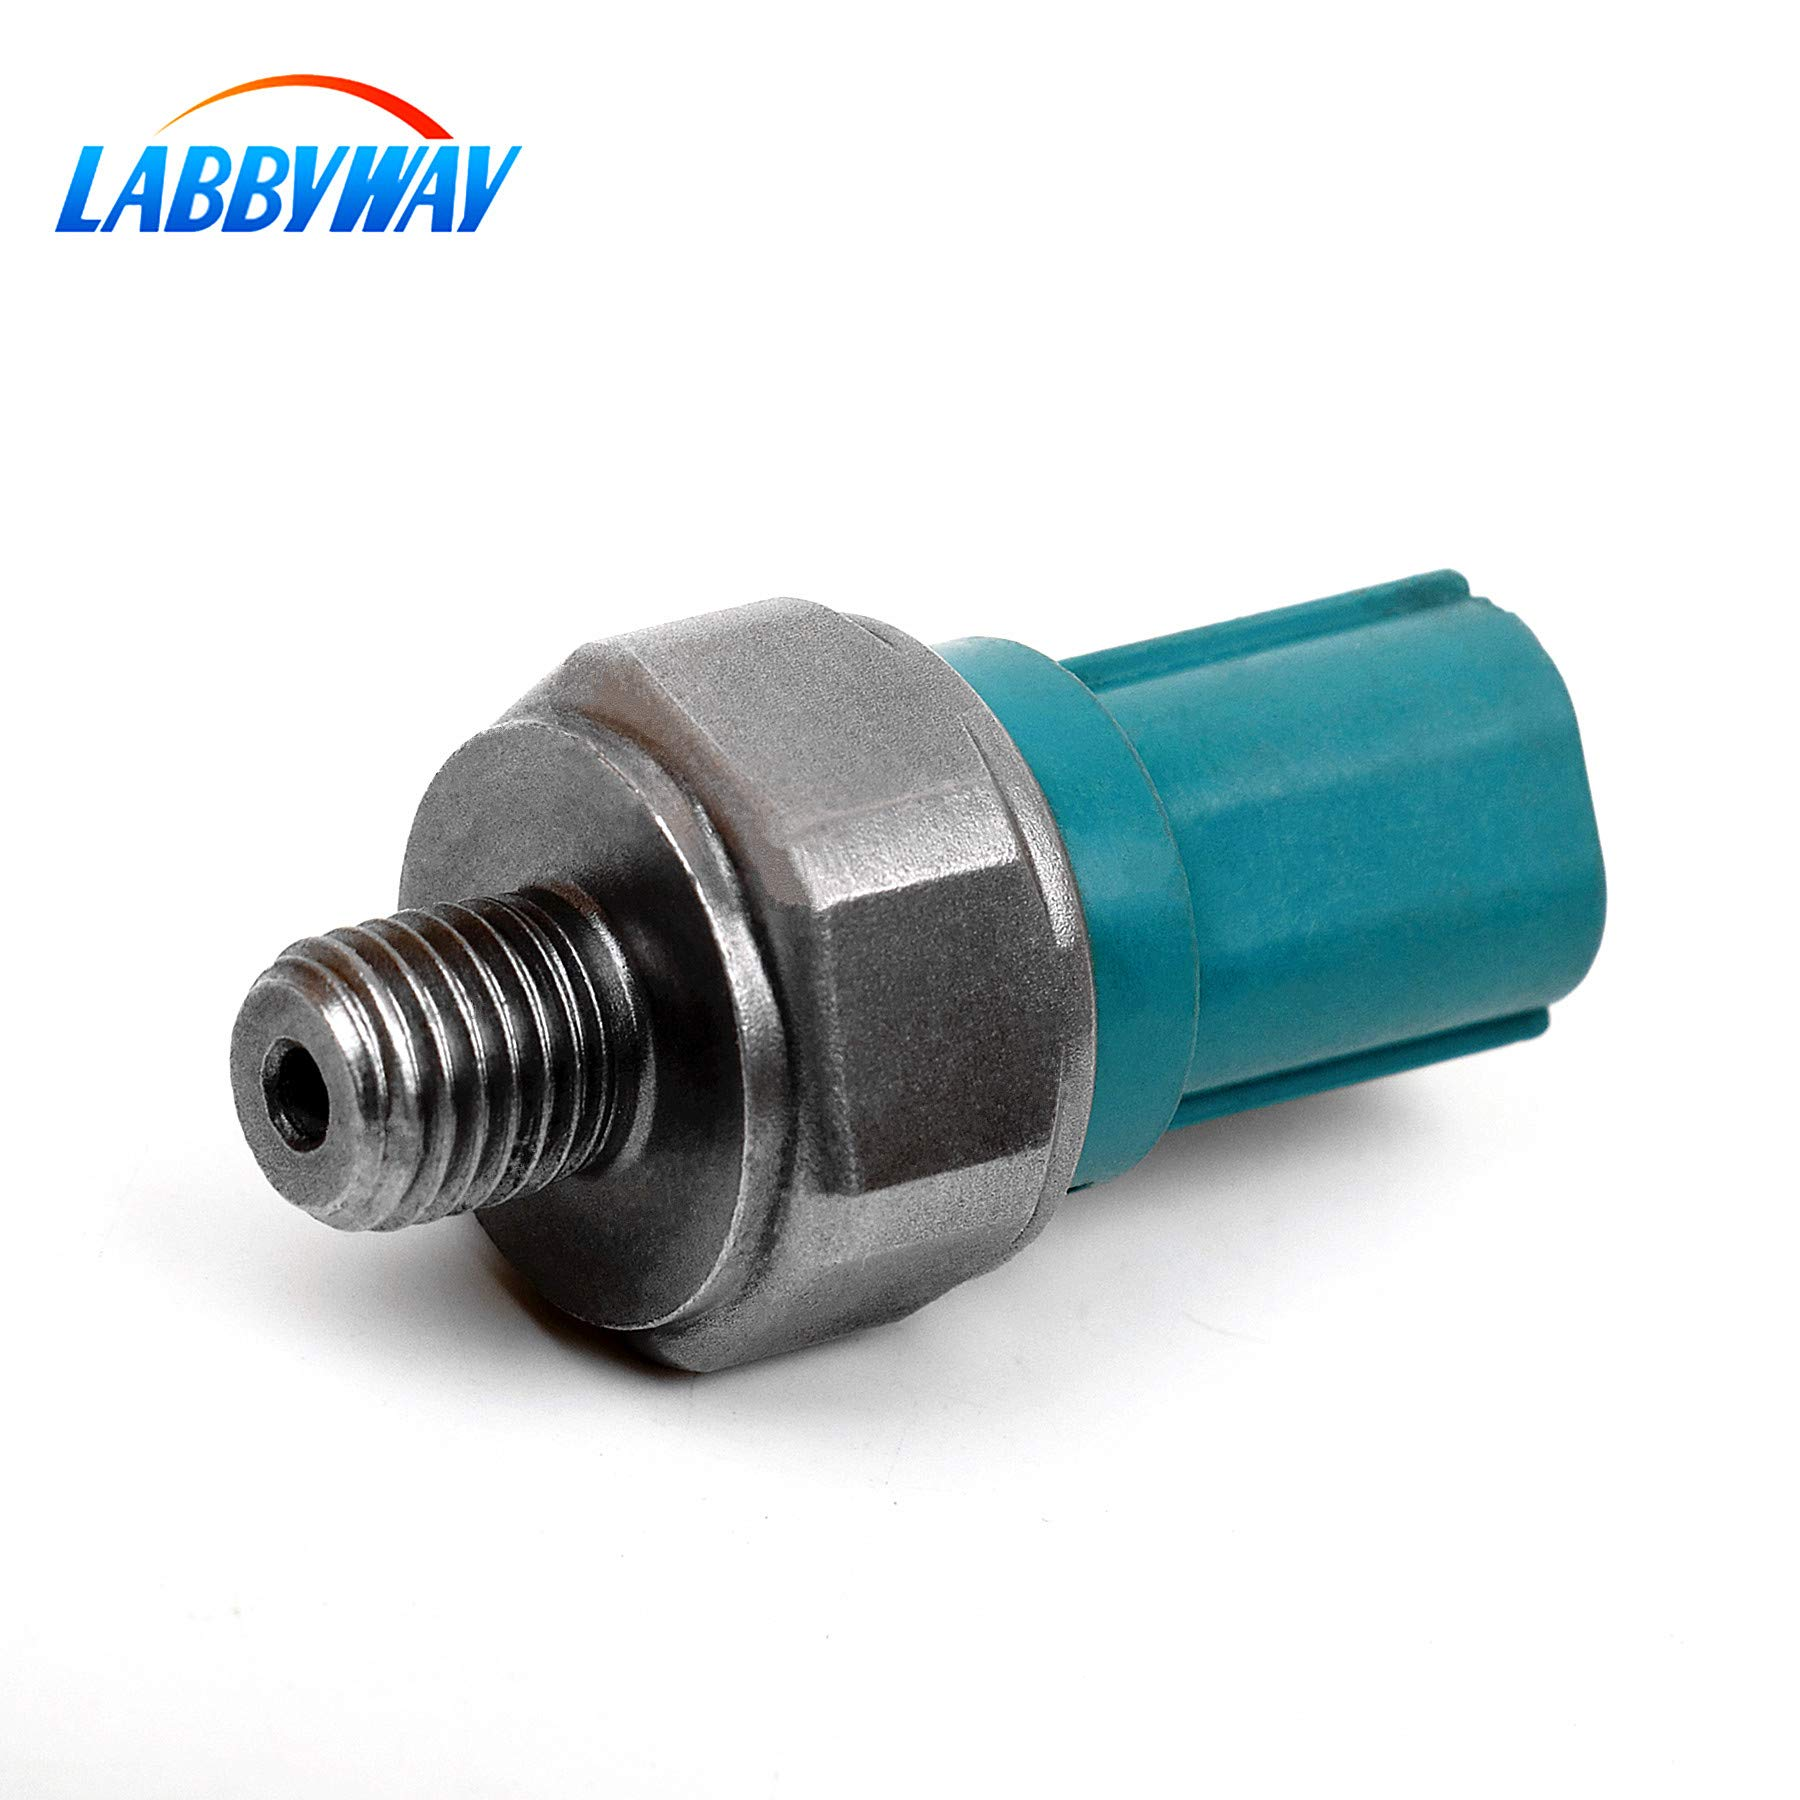 LABBYWAY Genuine Accord CR-V Automatic Transmission Oil Pressure Switch 28600-RCL-004